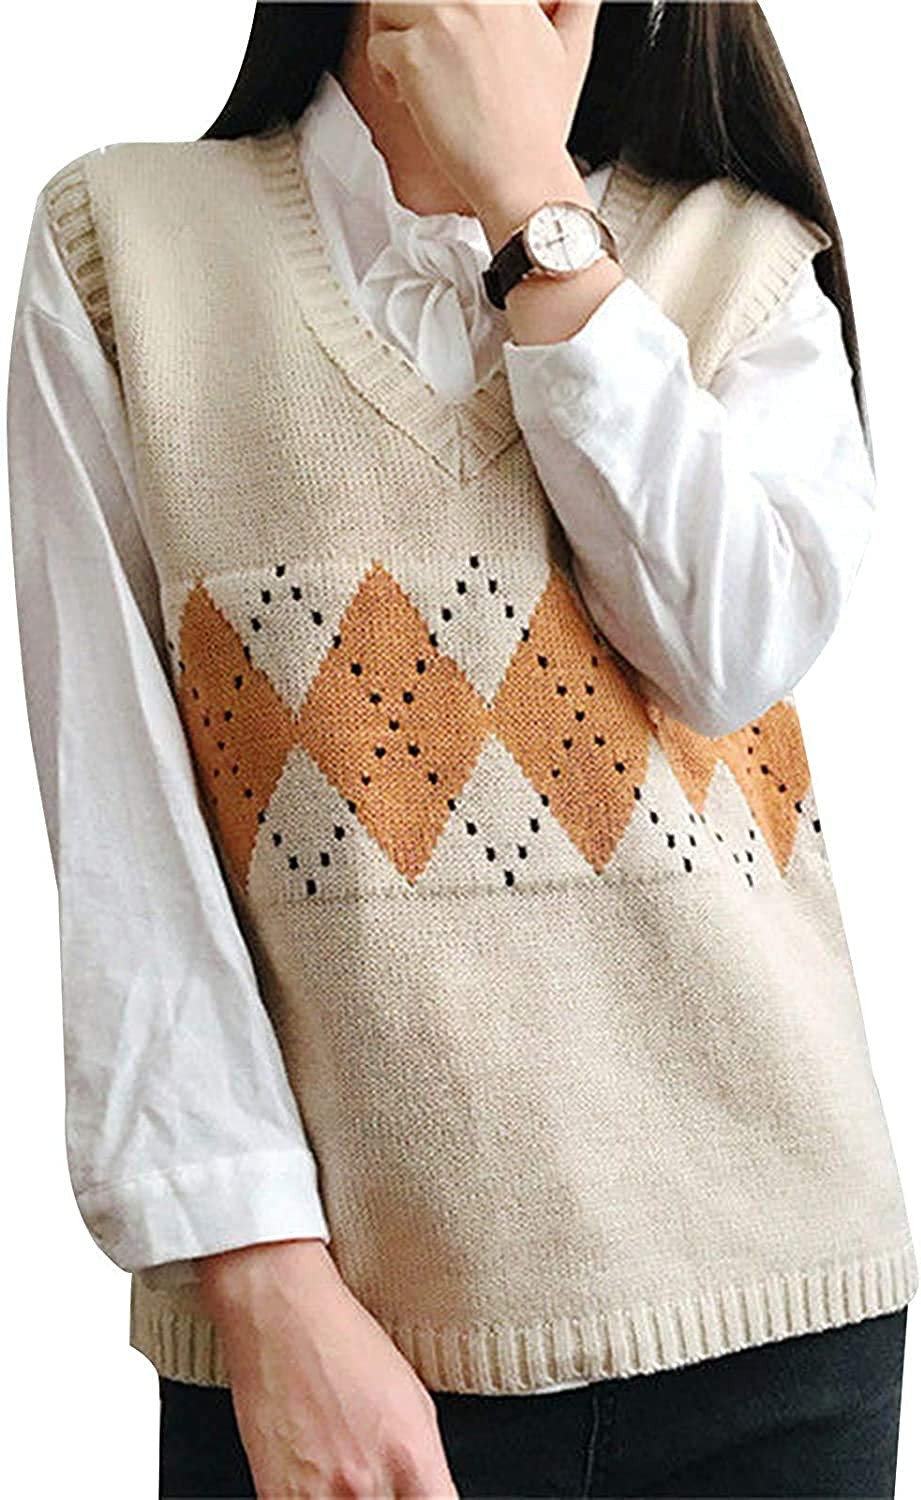 Women's Knitted Cotton V-Neck Vest JK Uniform Pullover Y2k 90s E-Girl Sleeveless Crop Sweater School Cardigan (Dotted Grid Apricot,Large)